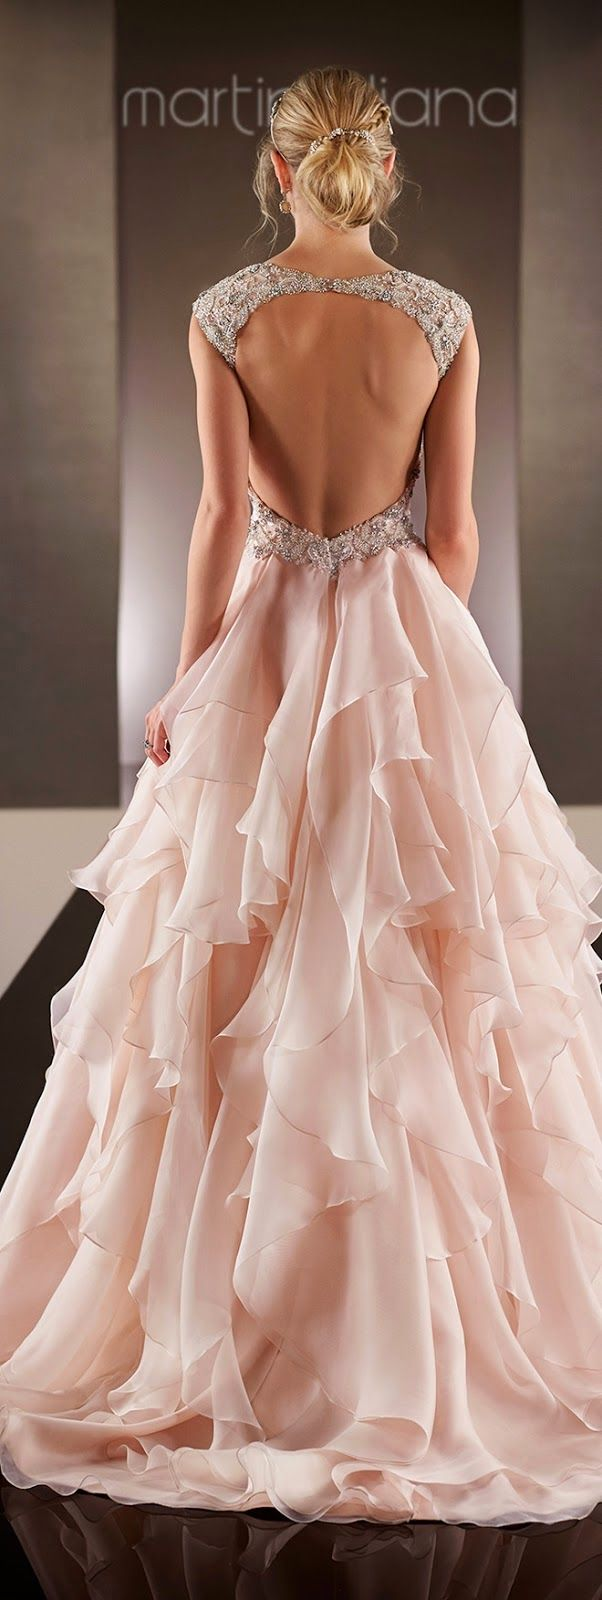 Best Wedding Dresses of 2014 | Ruffles, Wedding dress and Weddings